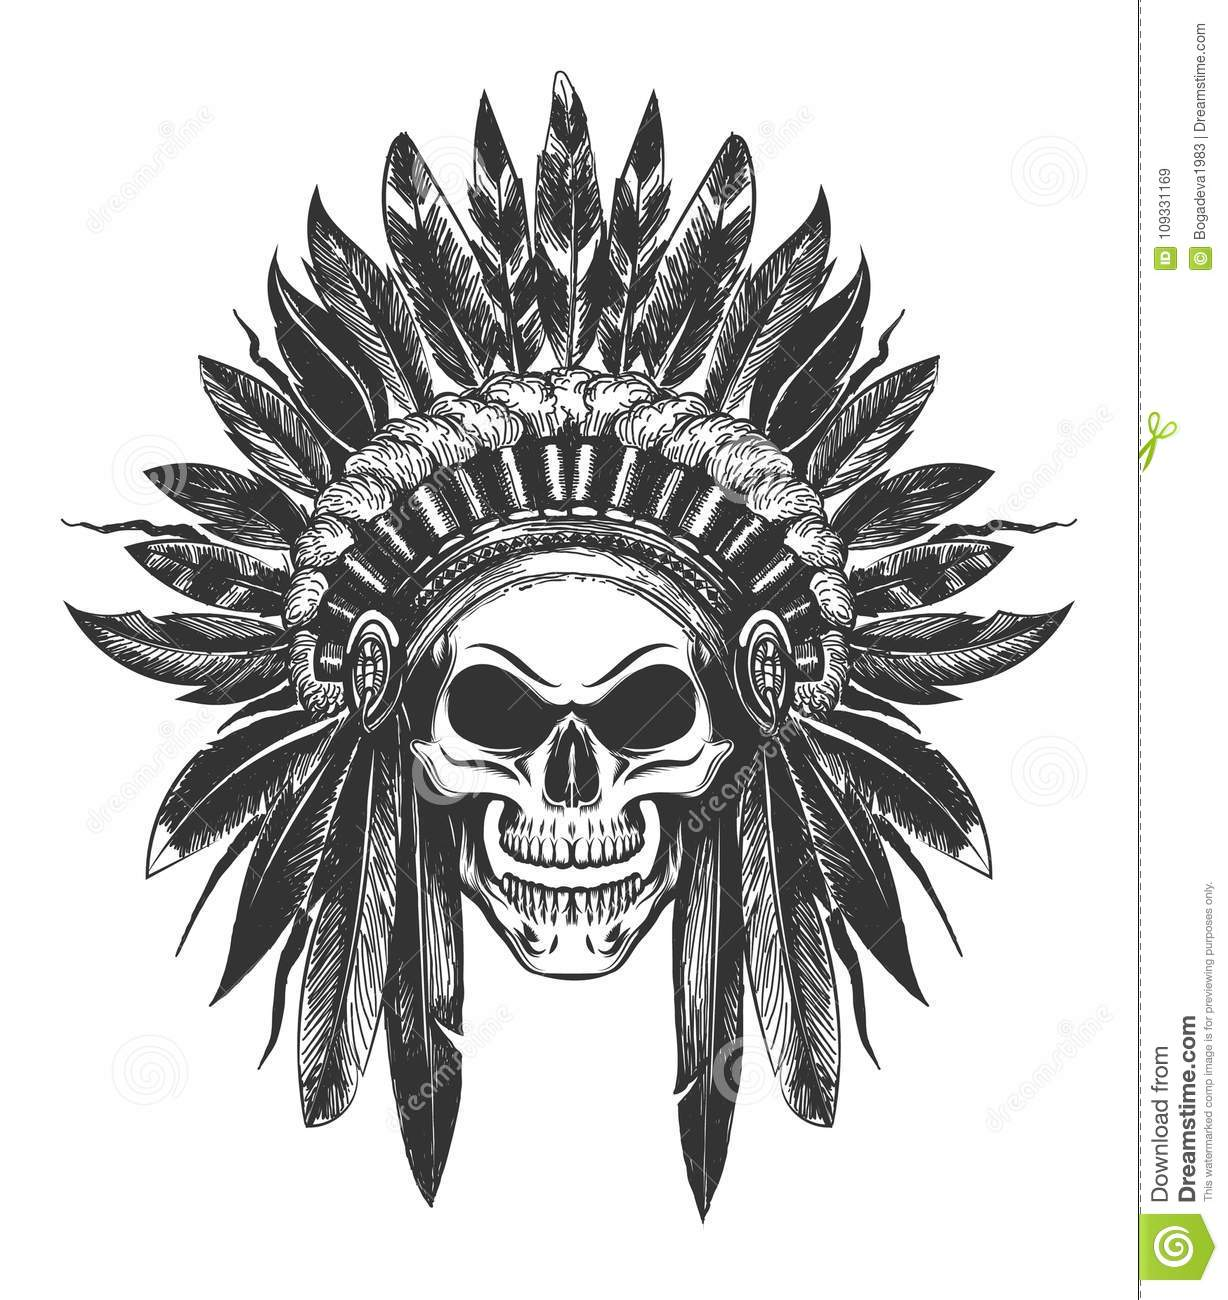 cabfcd58d Human Skull in Native American indian War Bonnet drawn in tattoo style.  Vector illustration.